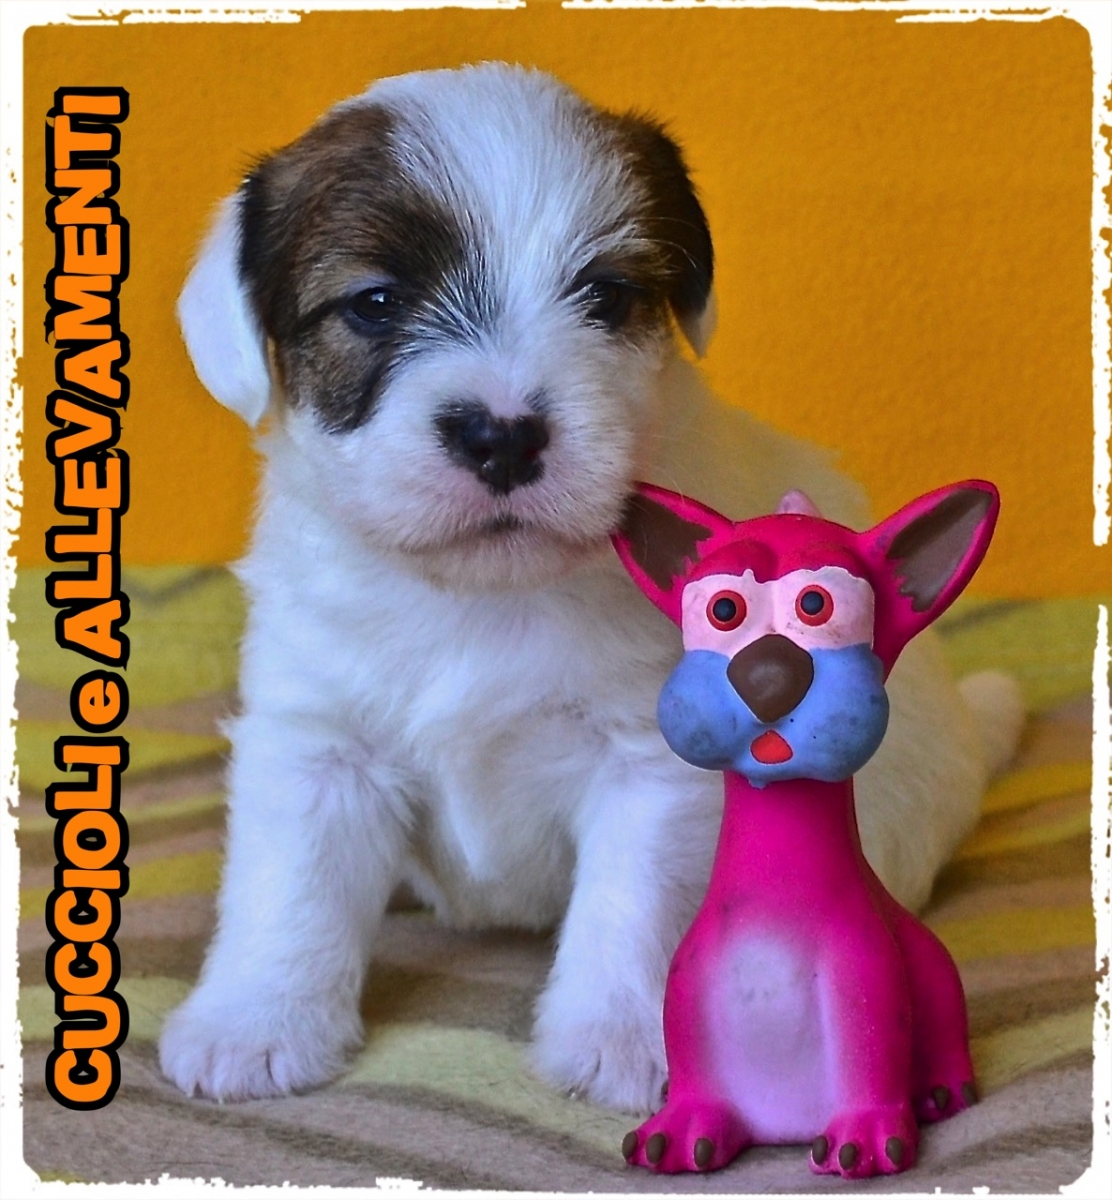 Jack Russell/Russel 21_wm